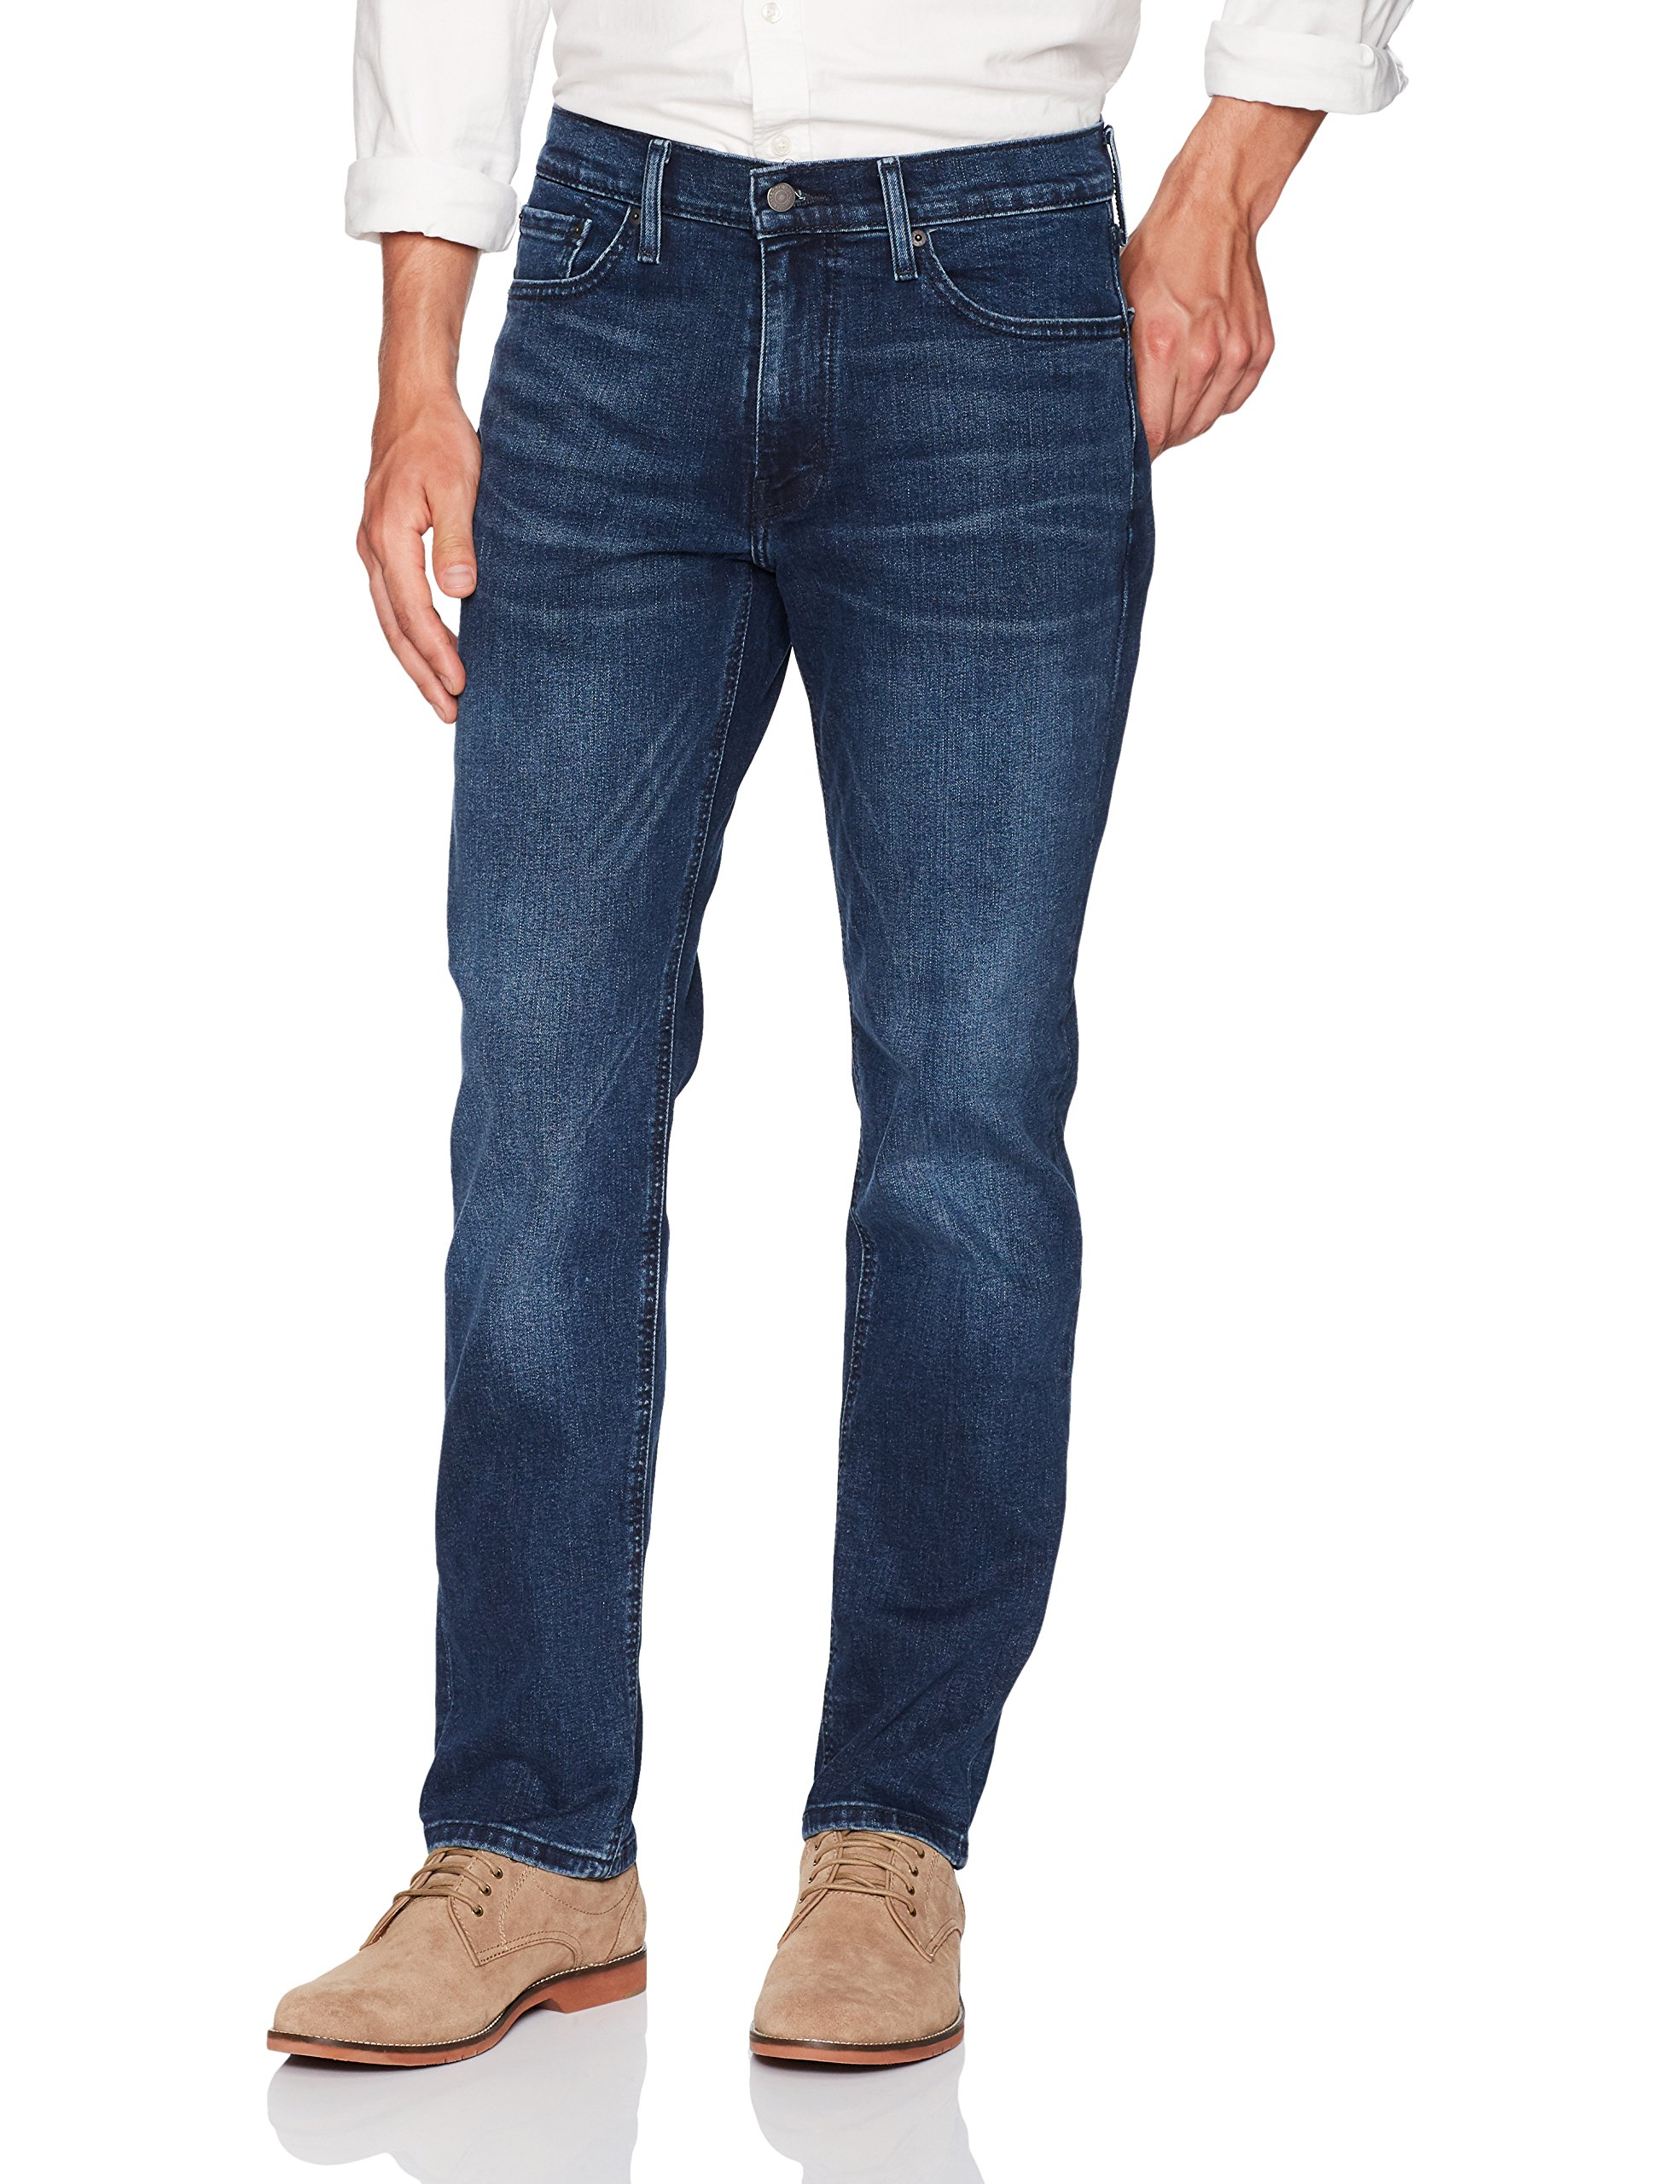 Levi's Men's 541 Athletic Straight Fit-Jeans, Husker - Stretch, 34x32 by Levi's